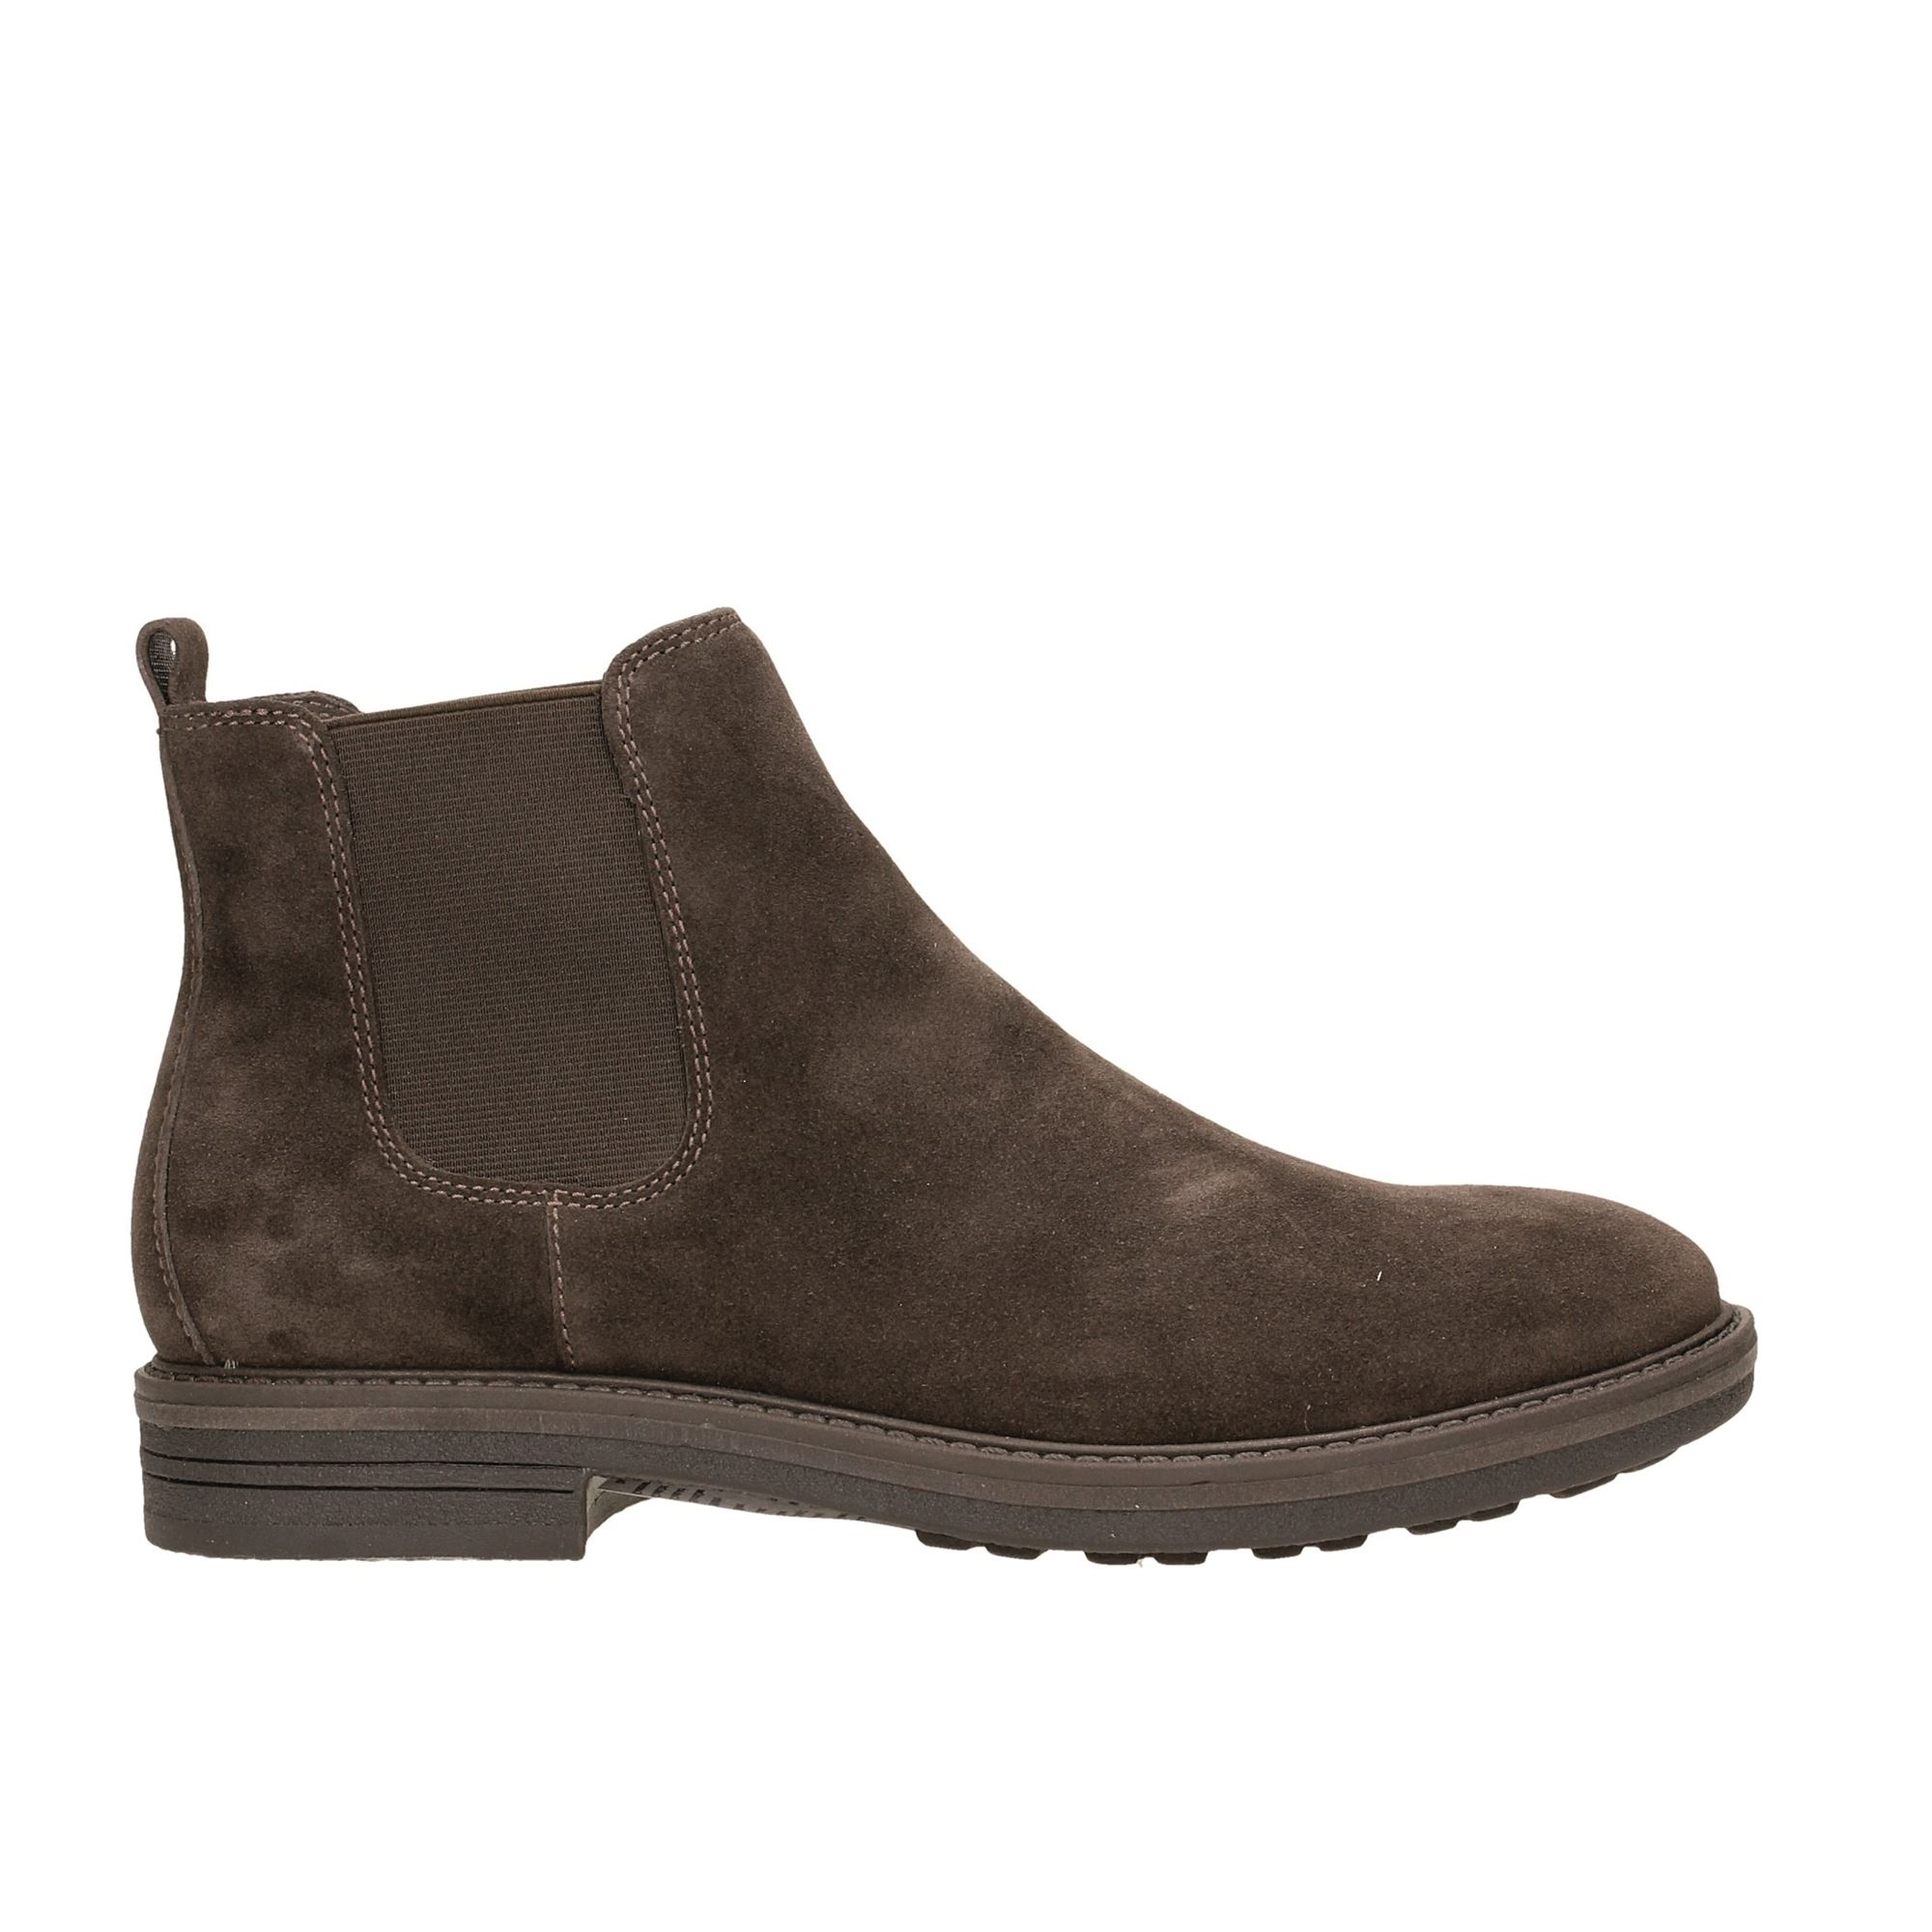 Tata Italia Shoes Man Stivaletti Brown MH-348H02-V